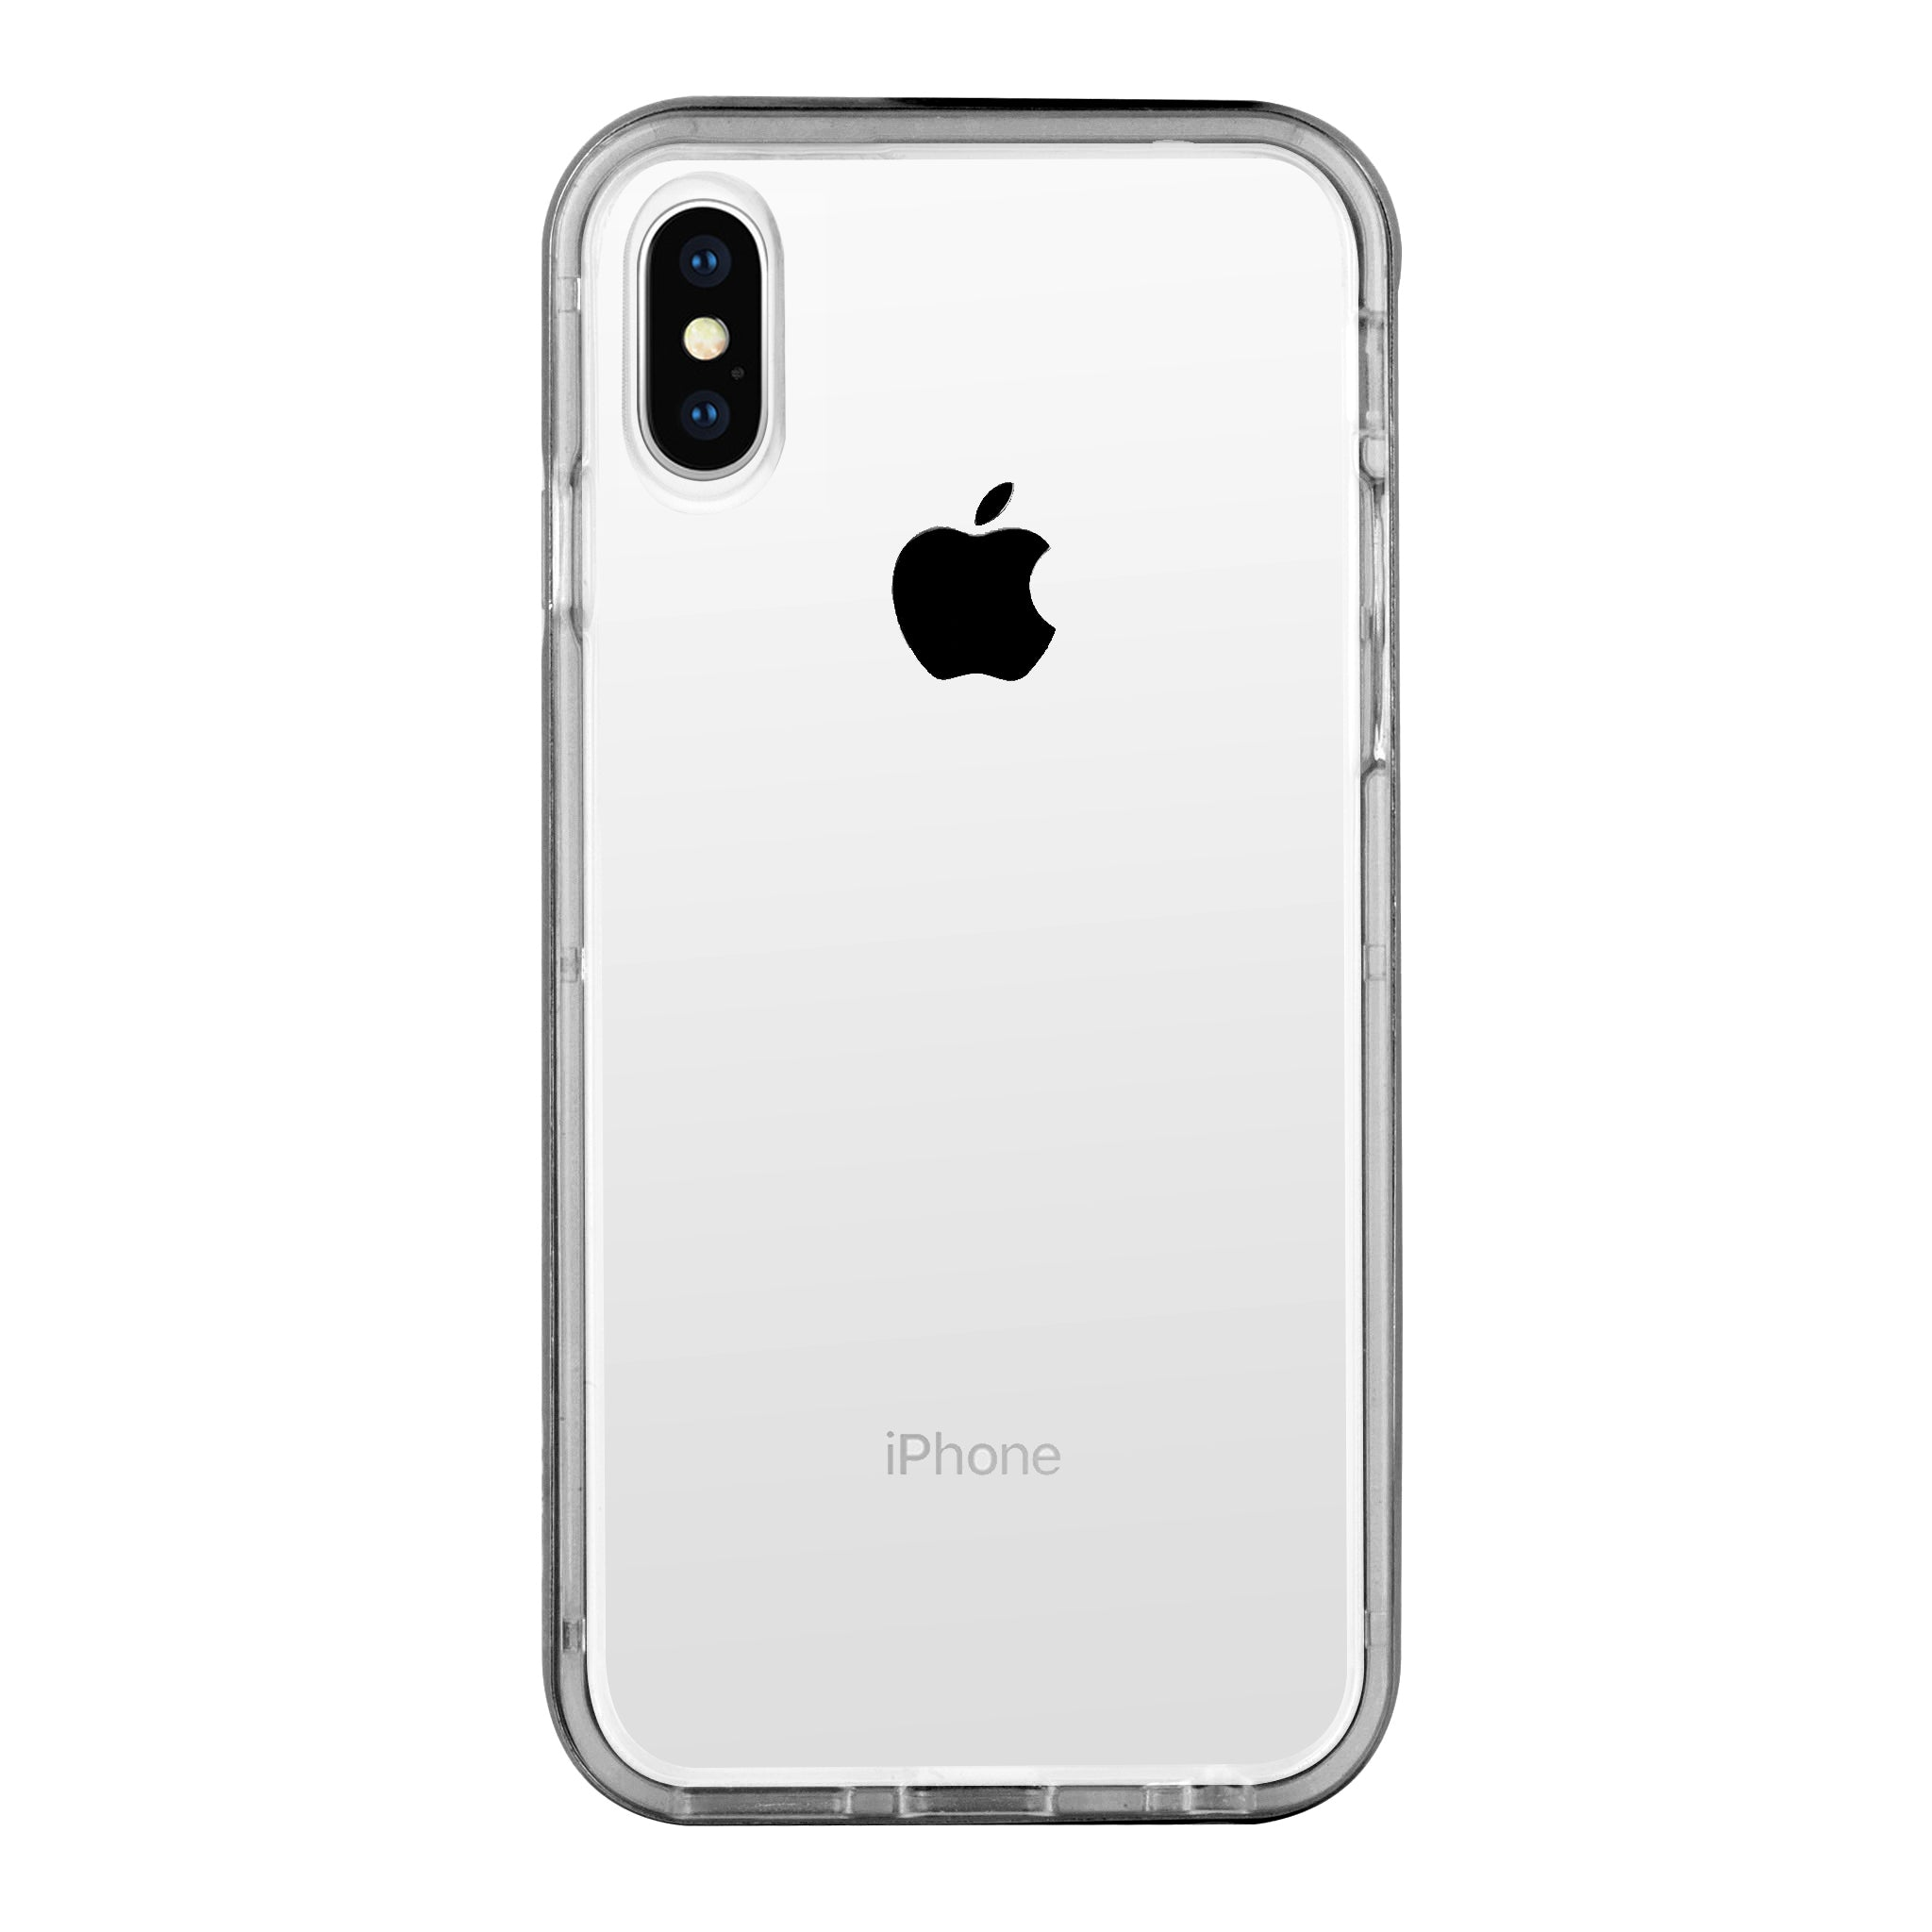 promo code 4820d ef0eb iPhone 7 Protection Cases - CYLO®